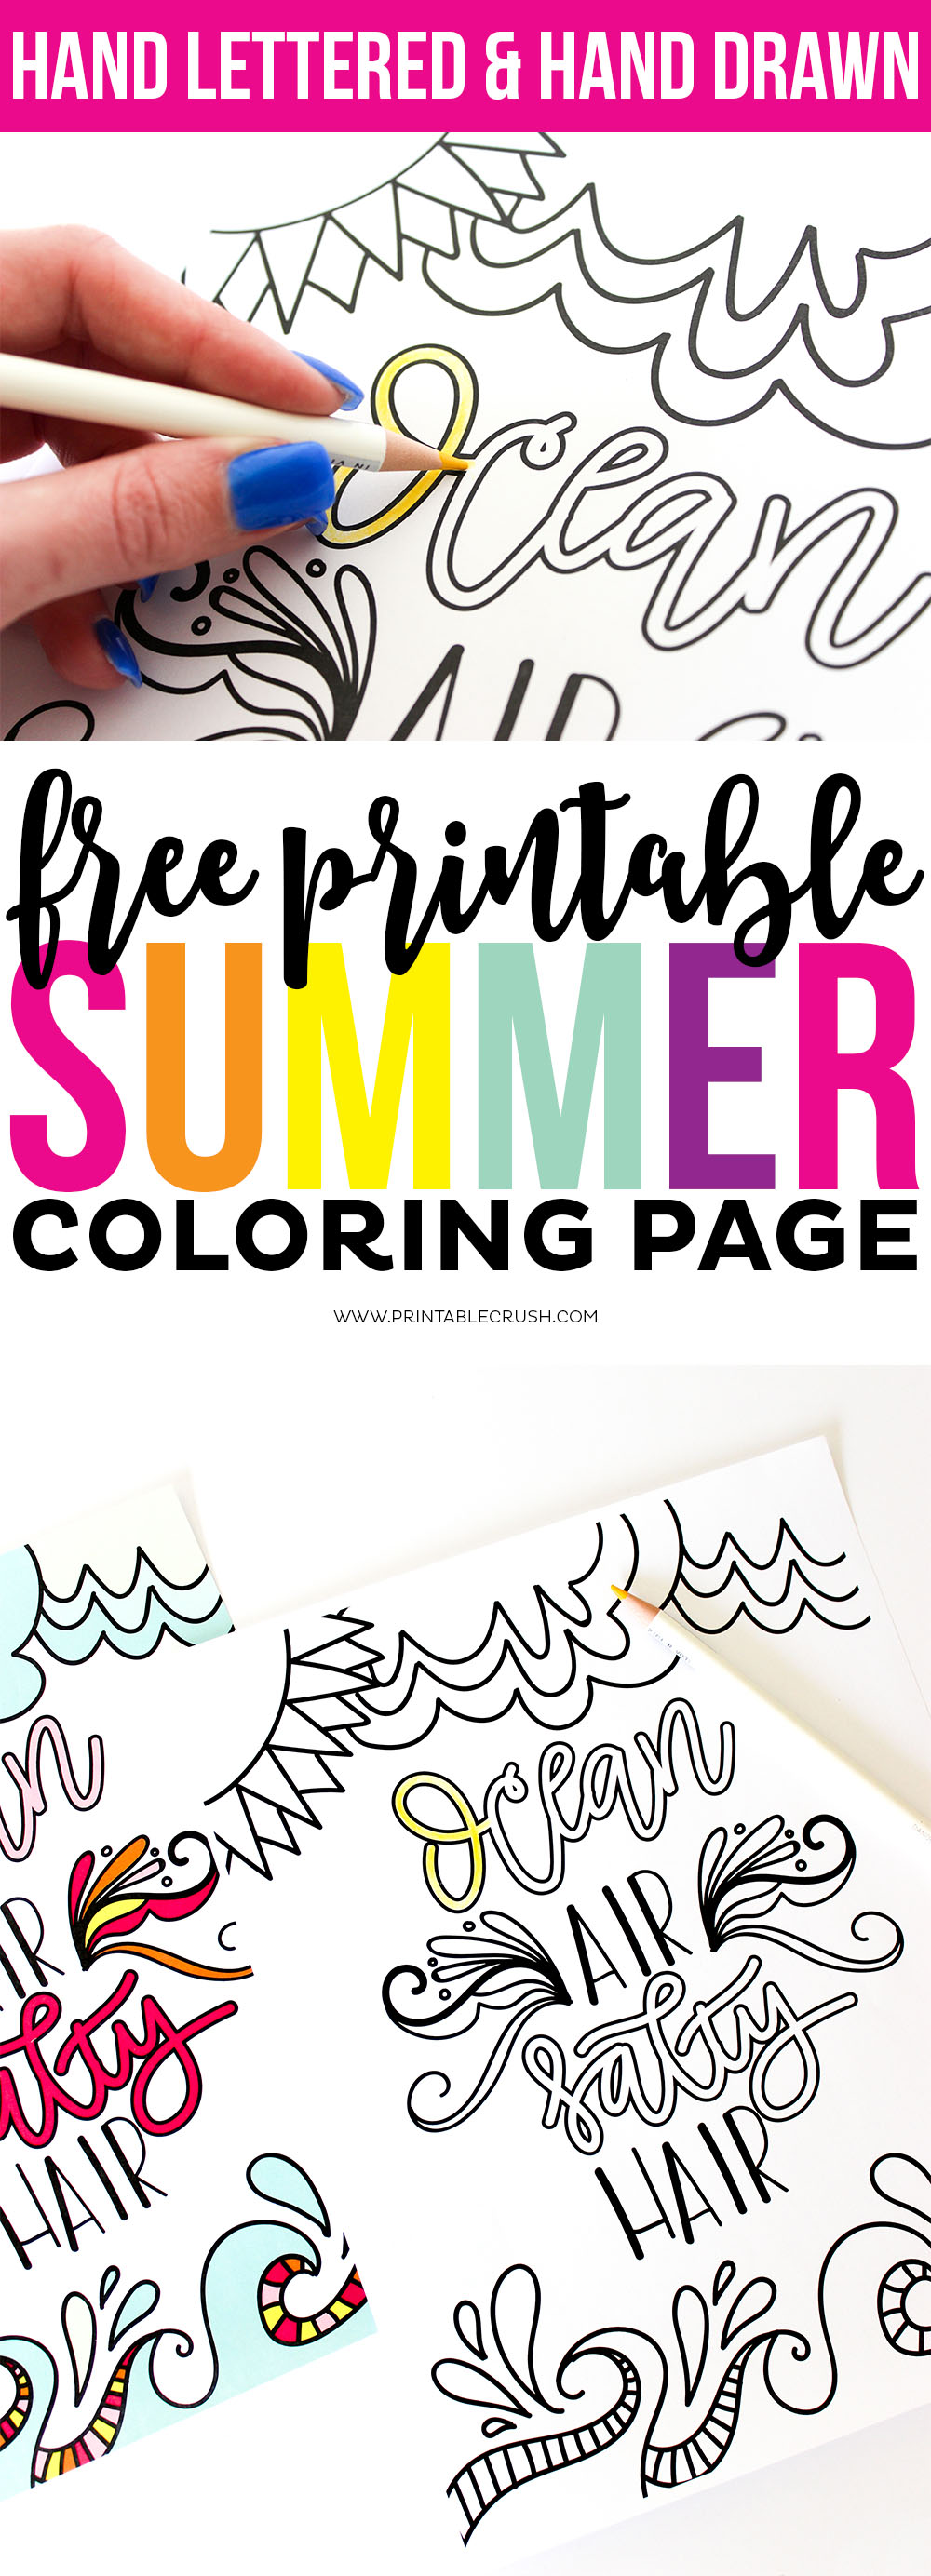 Download this Hand Lettered FREE Printable Summer Coloring Page to enjoy over and over again! This fun design is great for adults or kids on a summer trip!